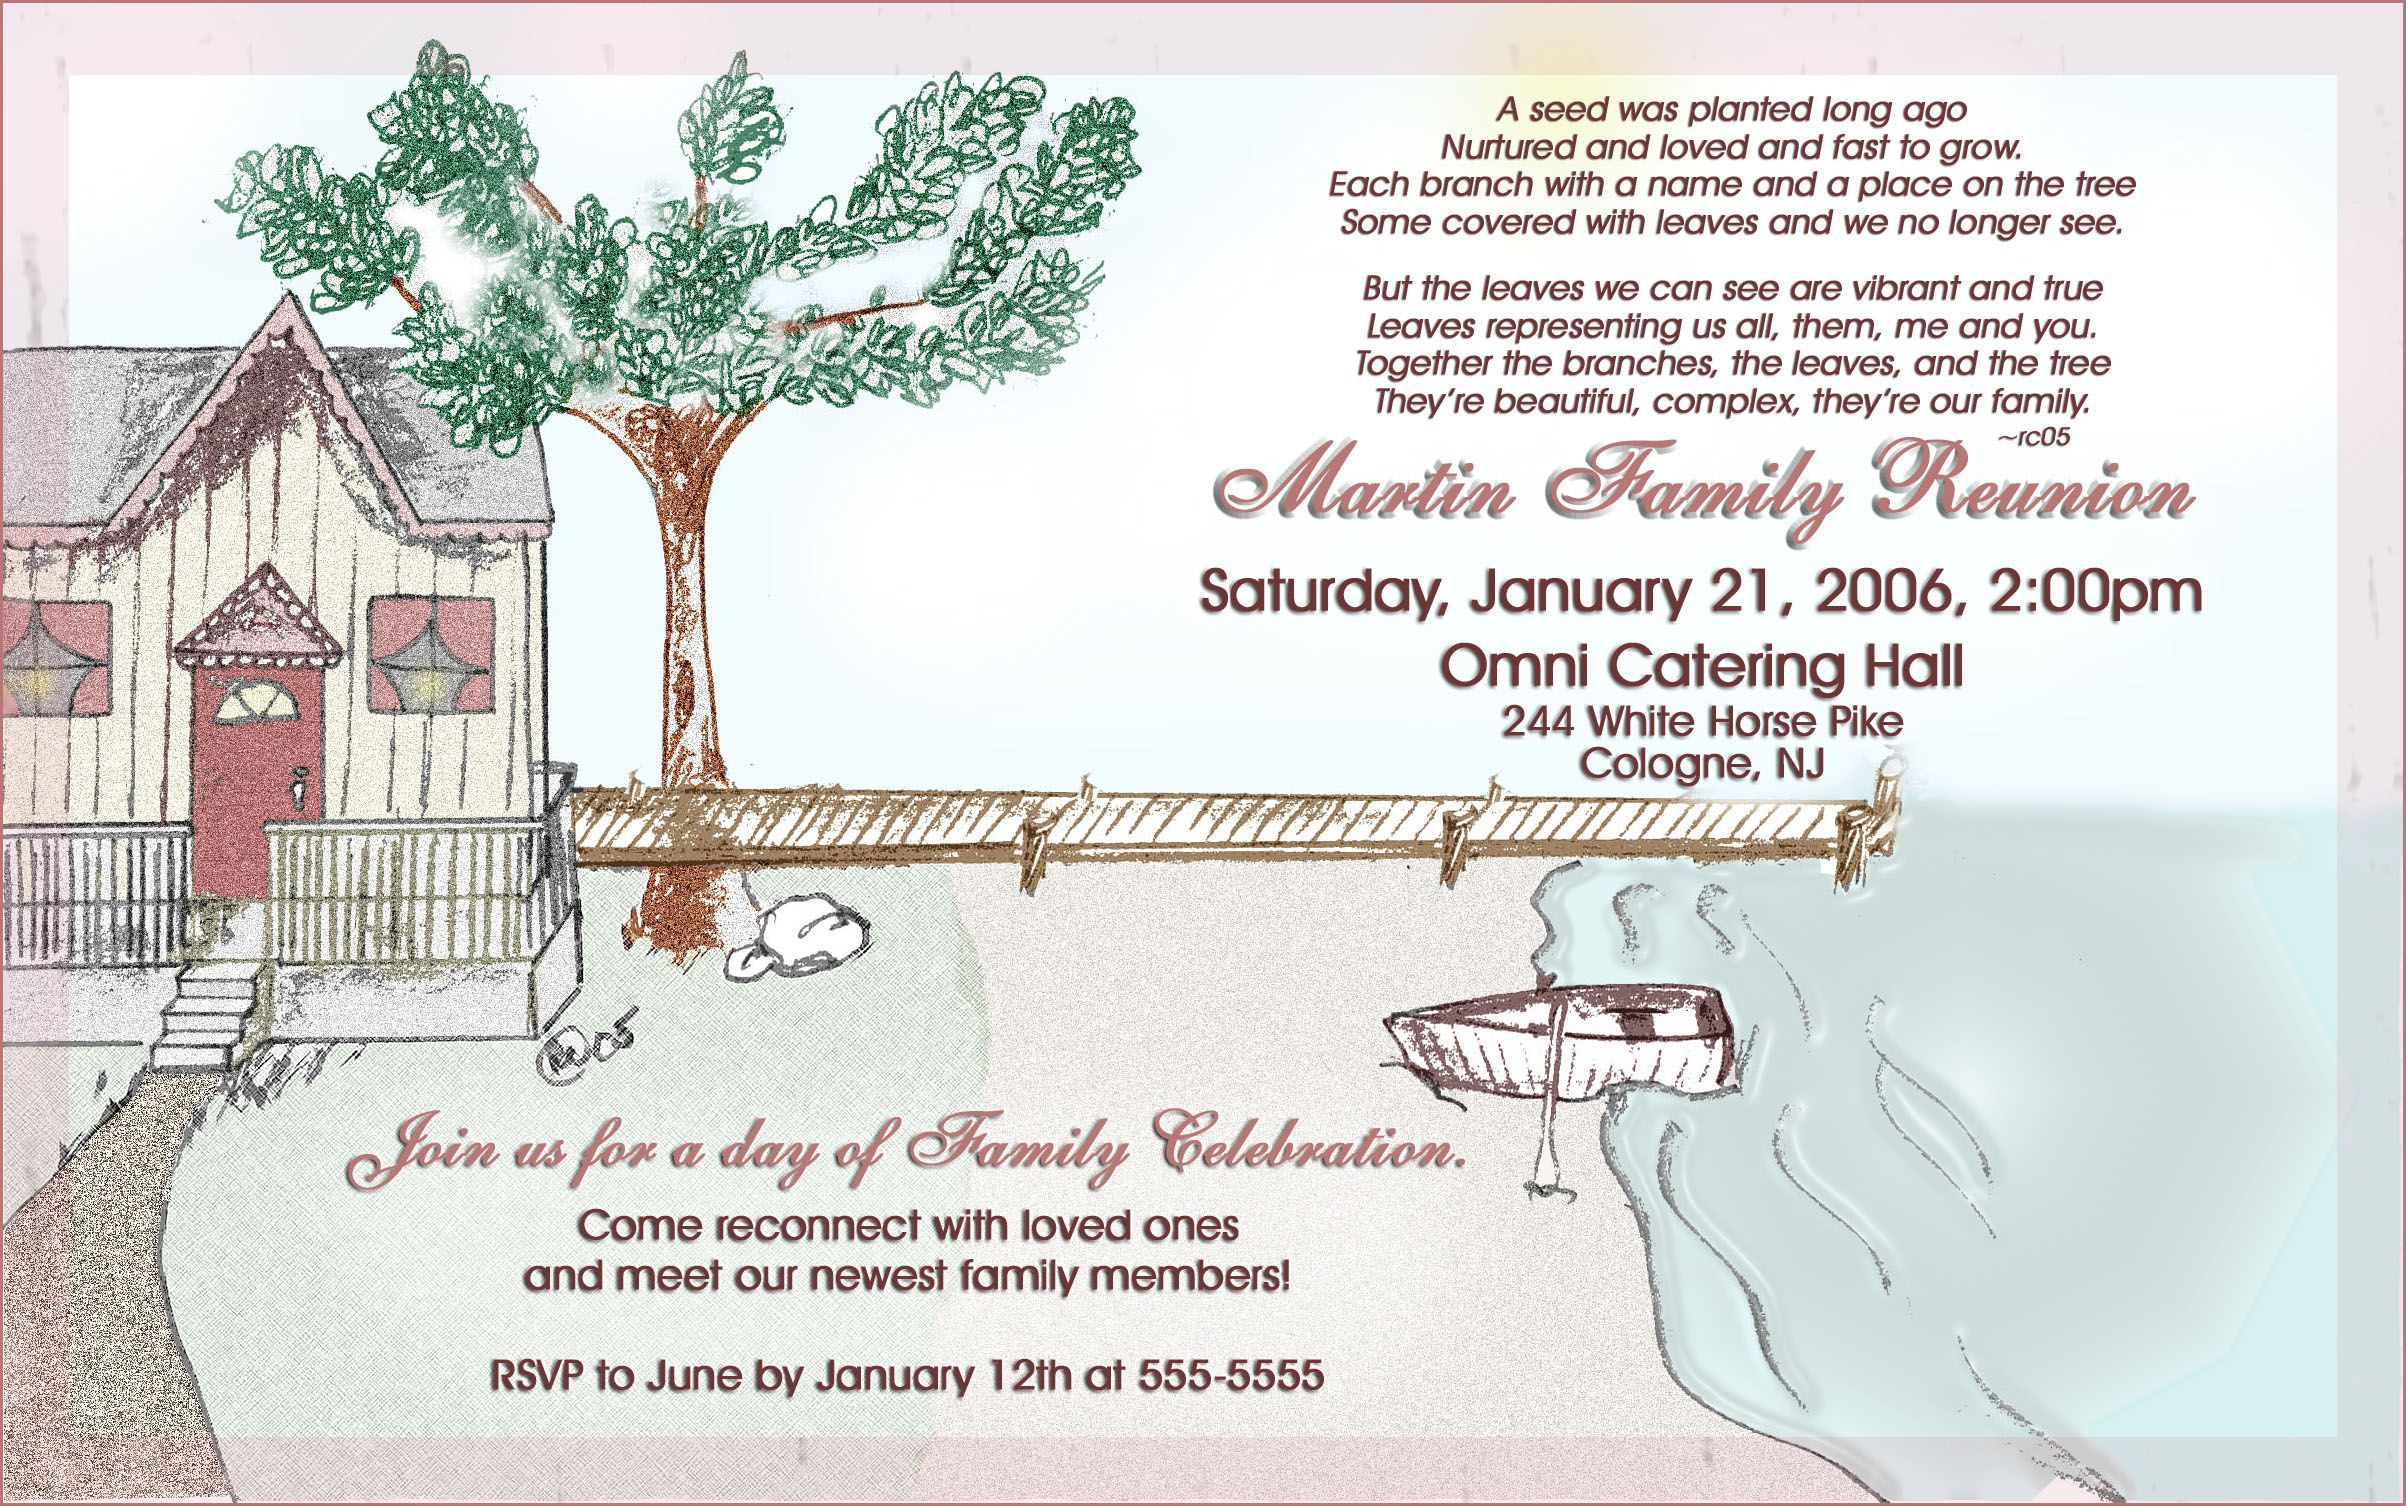 004 Exceptional Family Reunion Invitation Template Free Concept  For Word OnlineFull